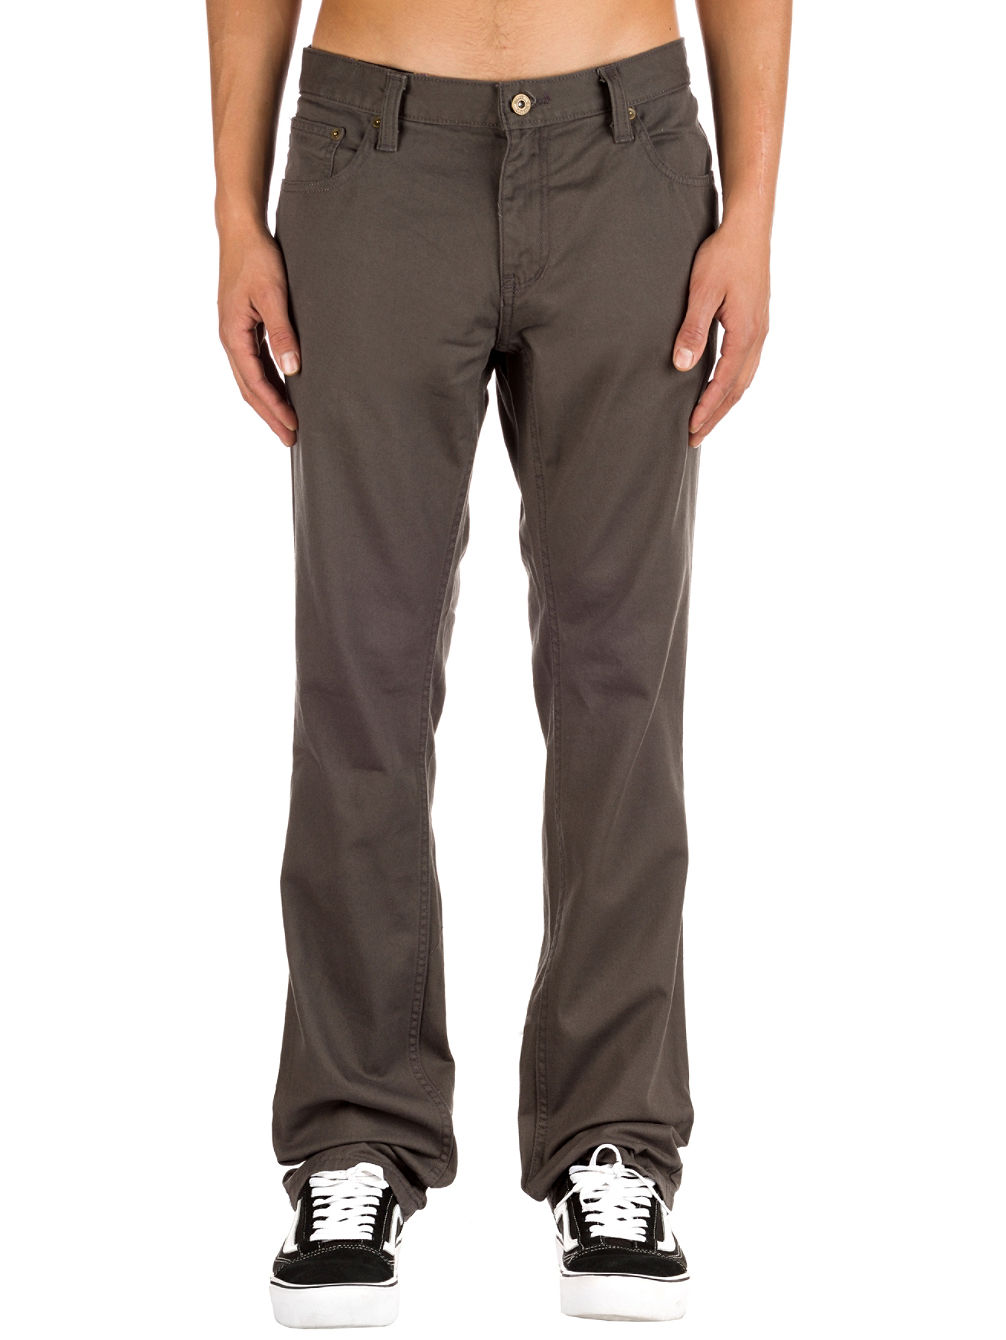 Night Train 5PKT Twill Pants